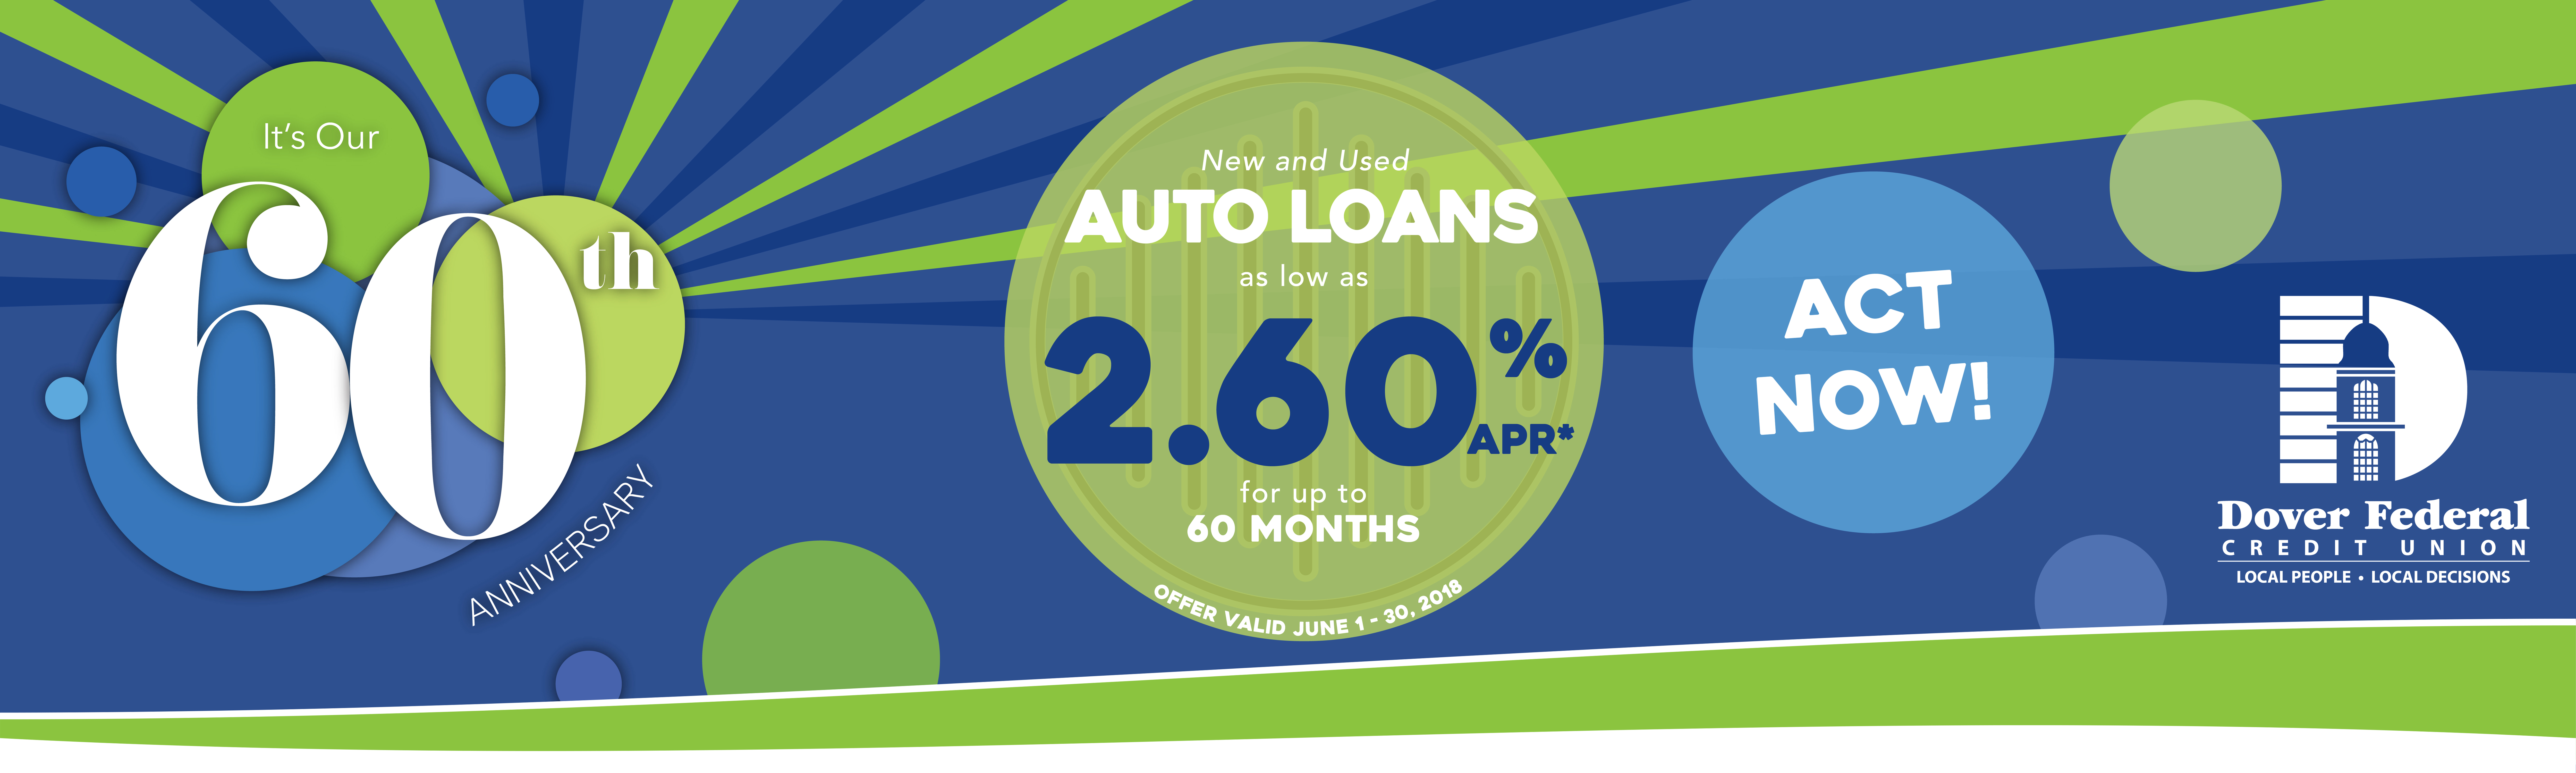 60th Anniversary _2.60% Auto Loan